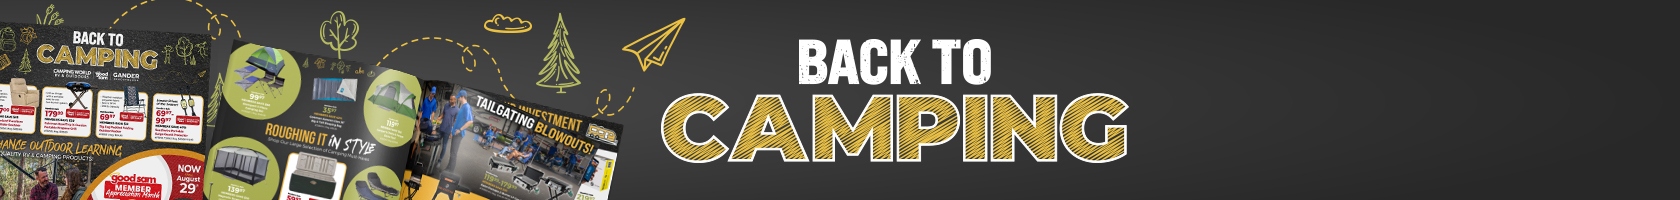 Back to Camping - Save up to 50% on RV & Outdoor Gear